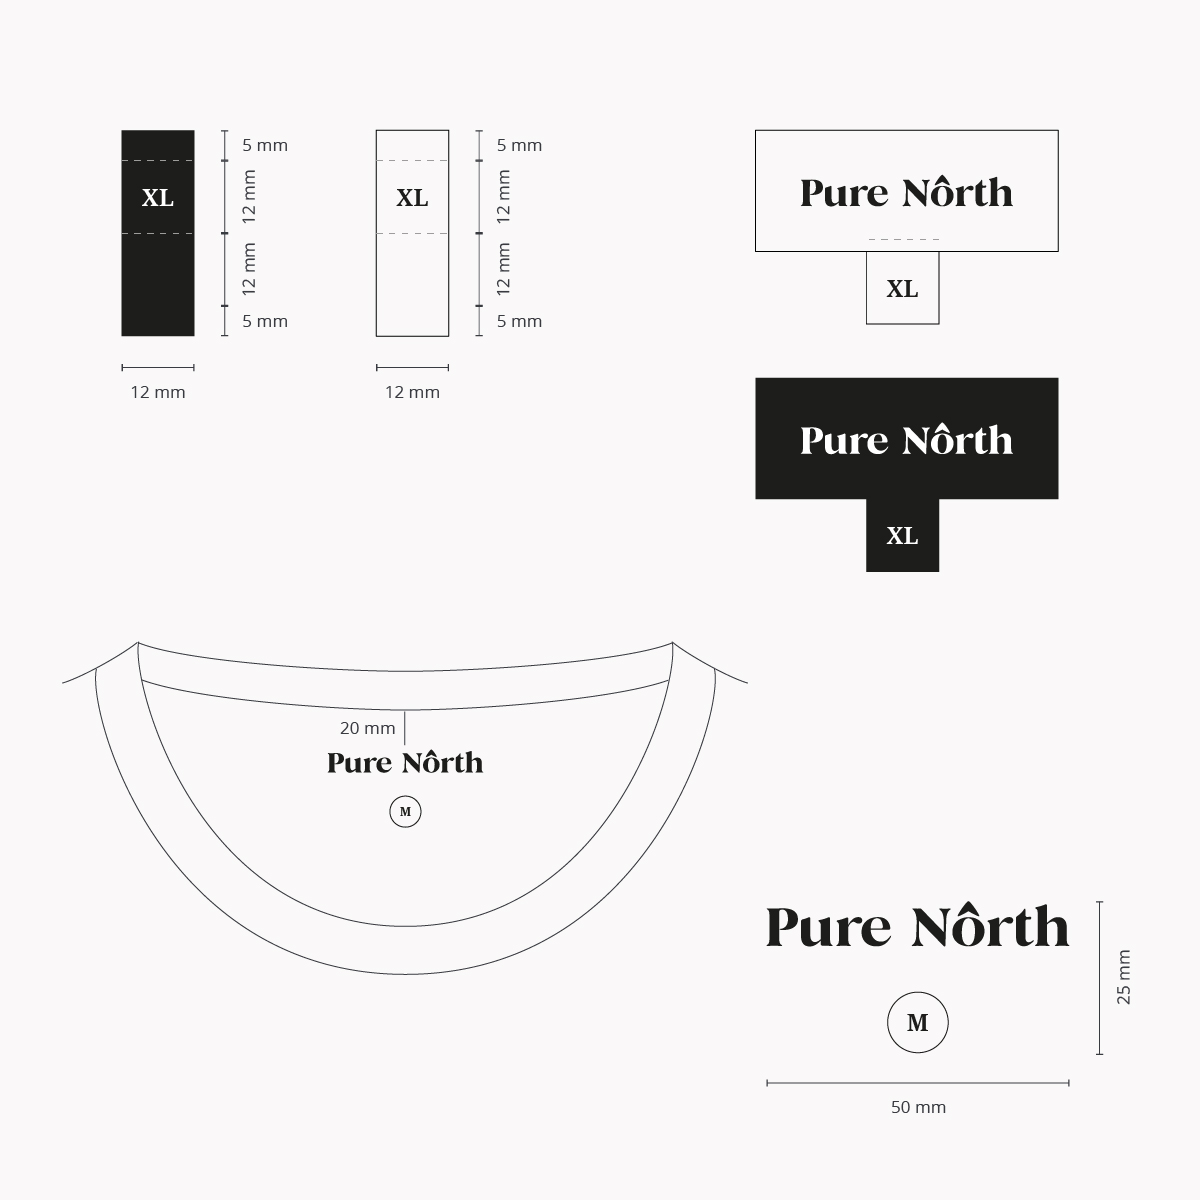 Pure North Labels